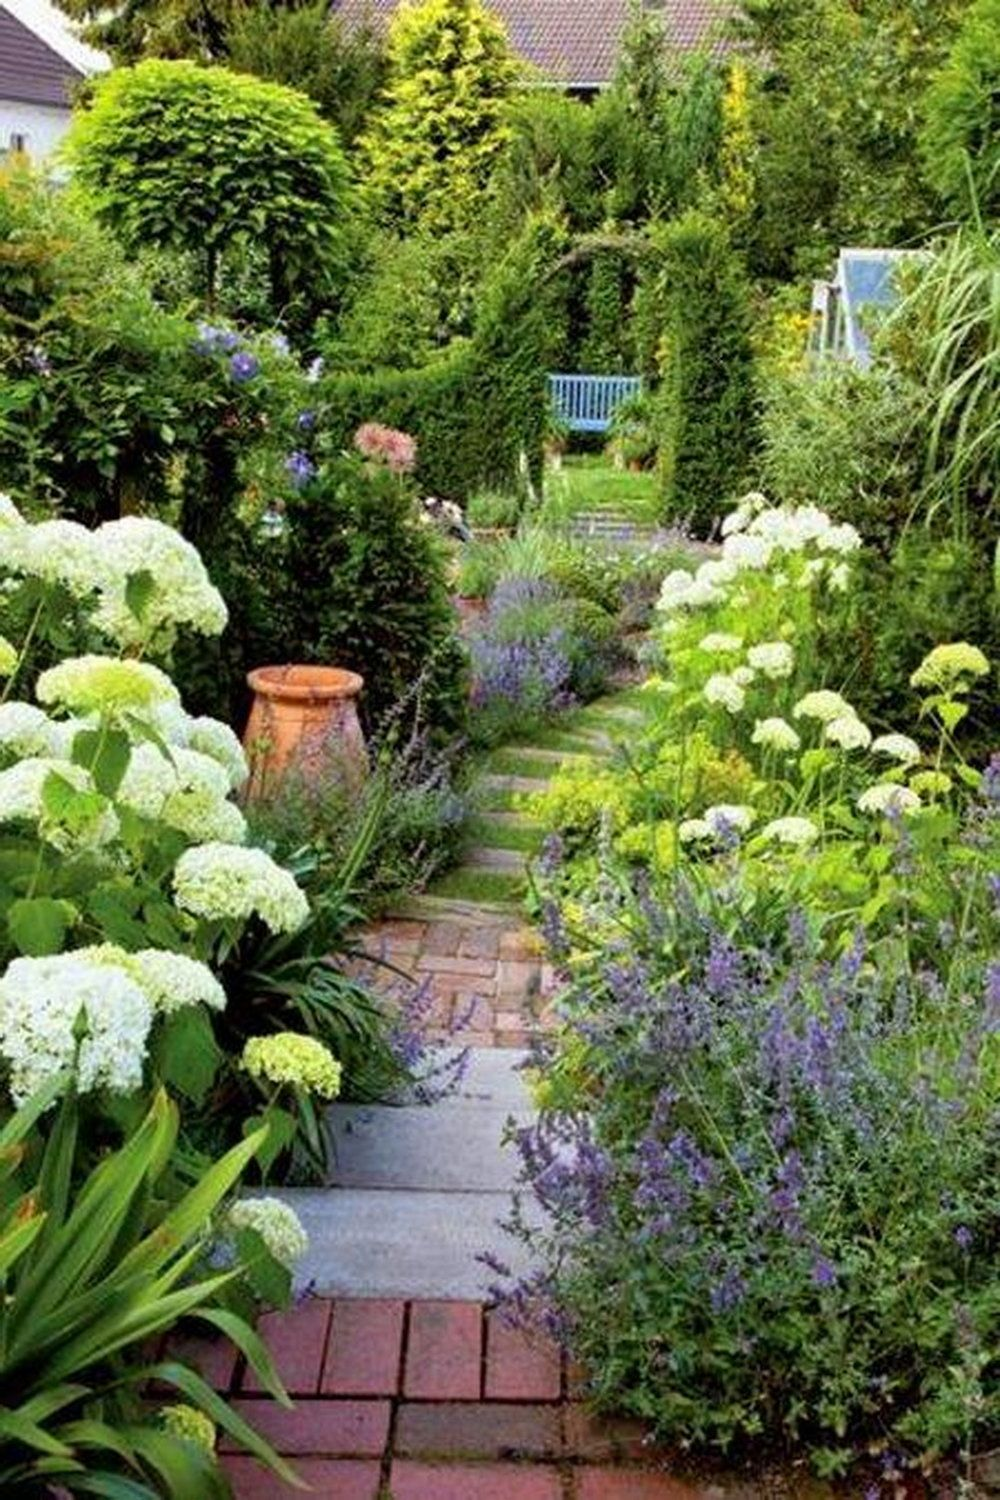 House garden landscape    MagicalSecret Garden Paths  Future House Garden  Pinterest